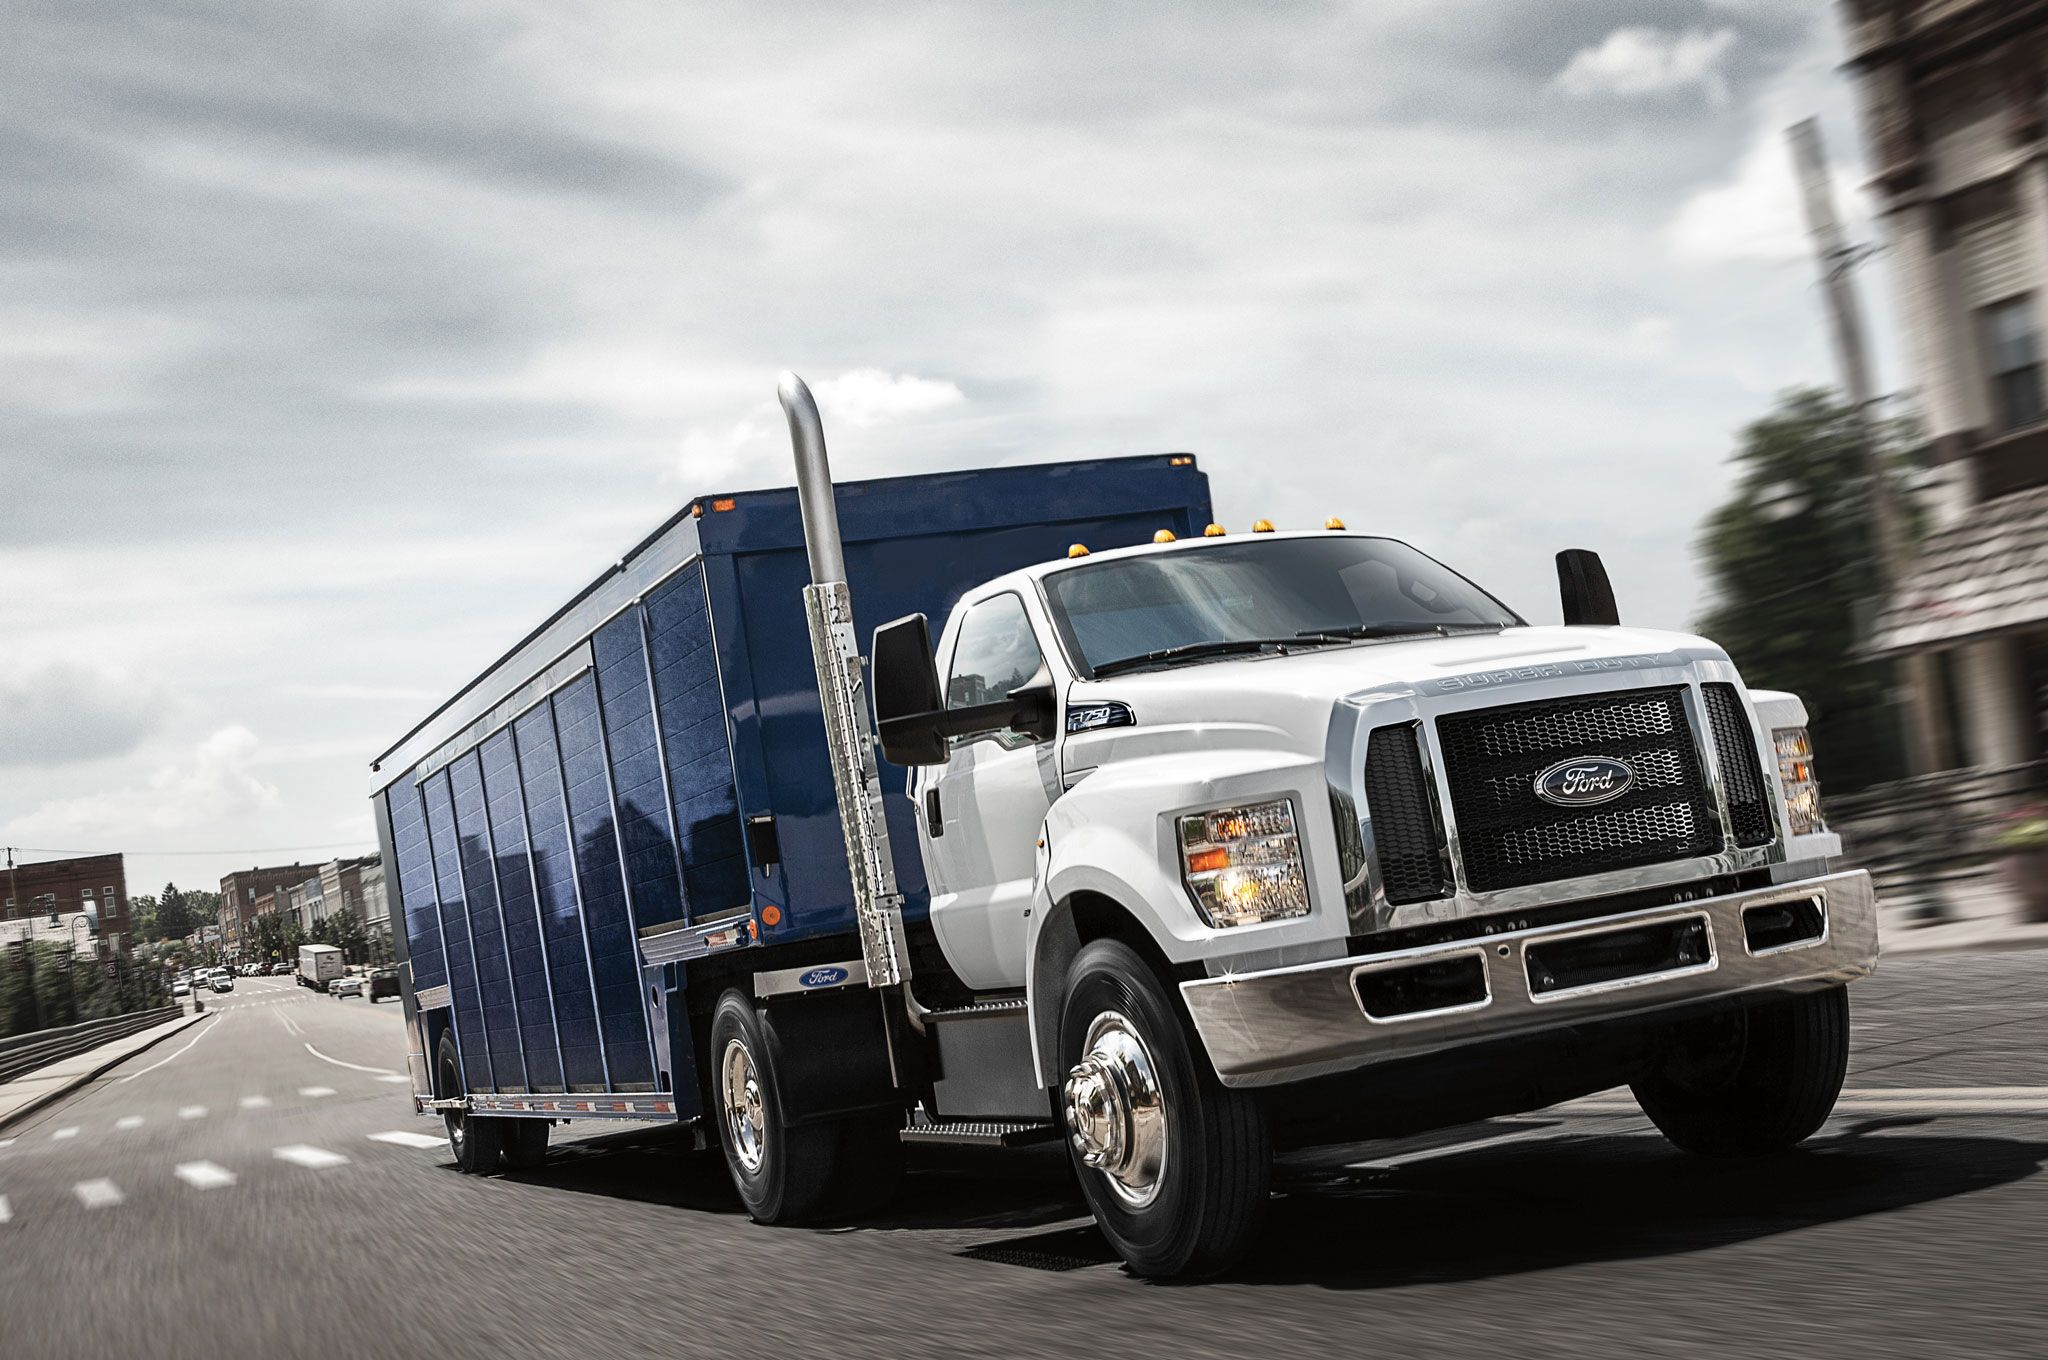 Ford d-750 photo - 10